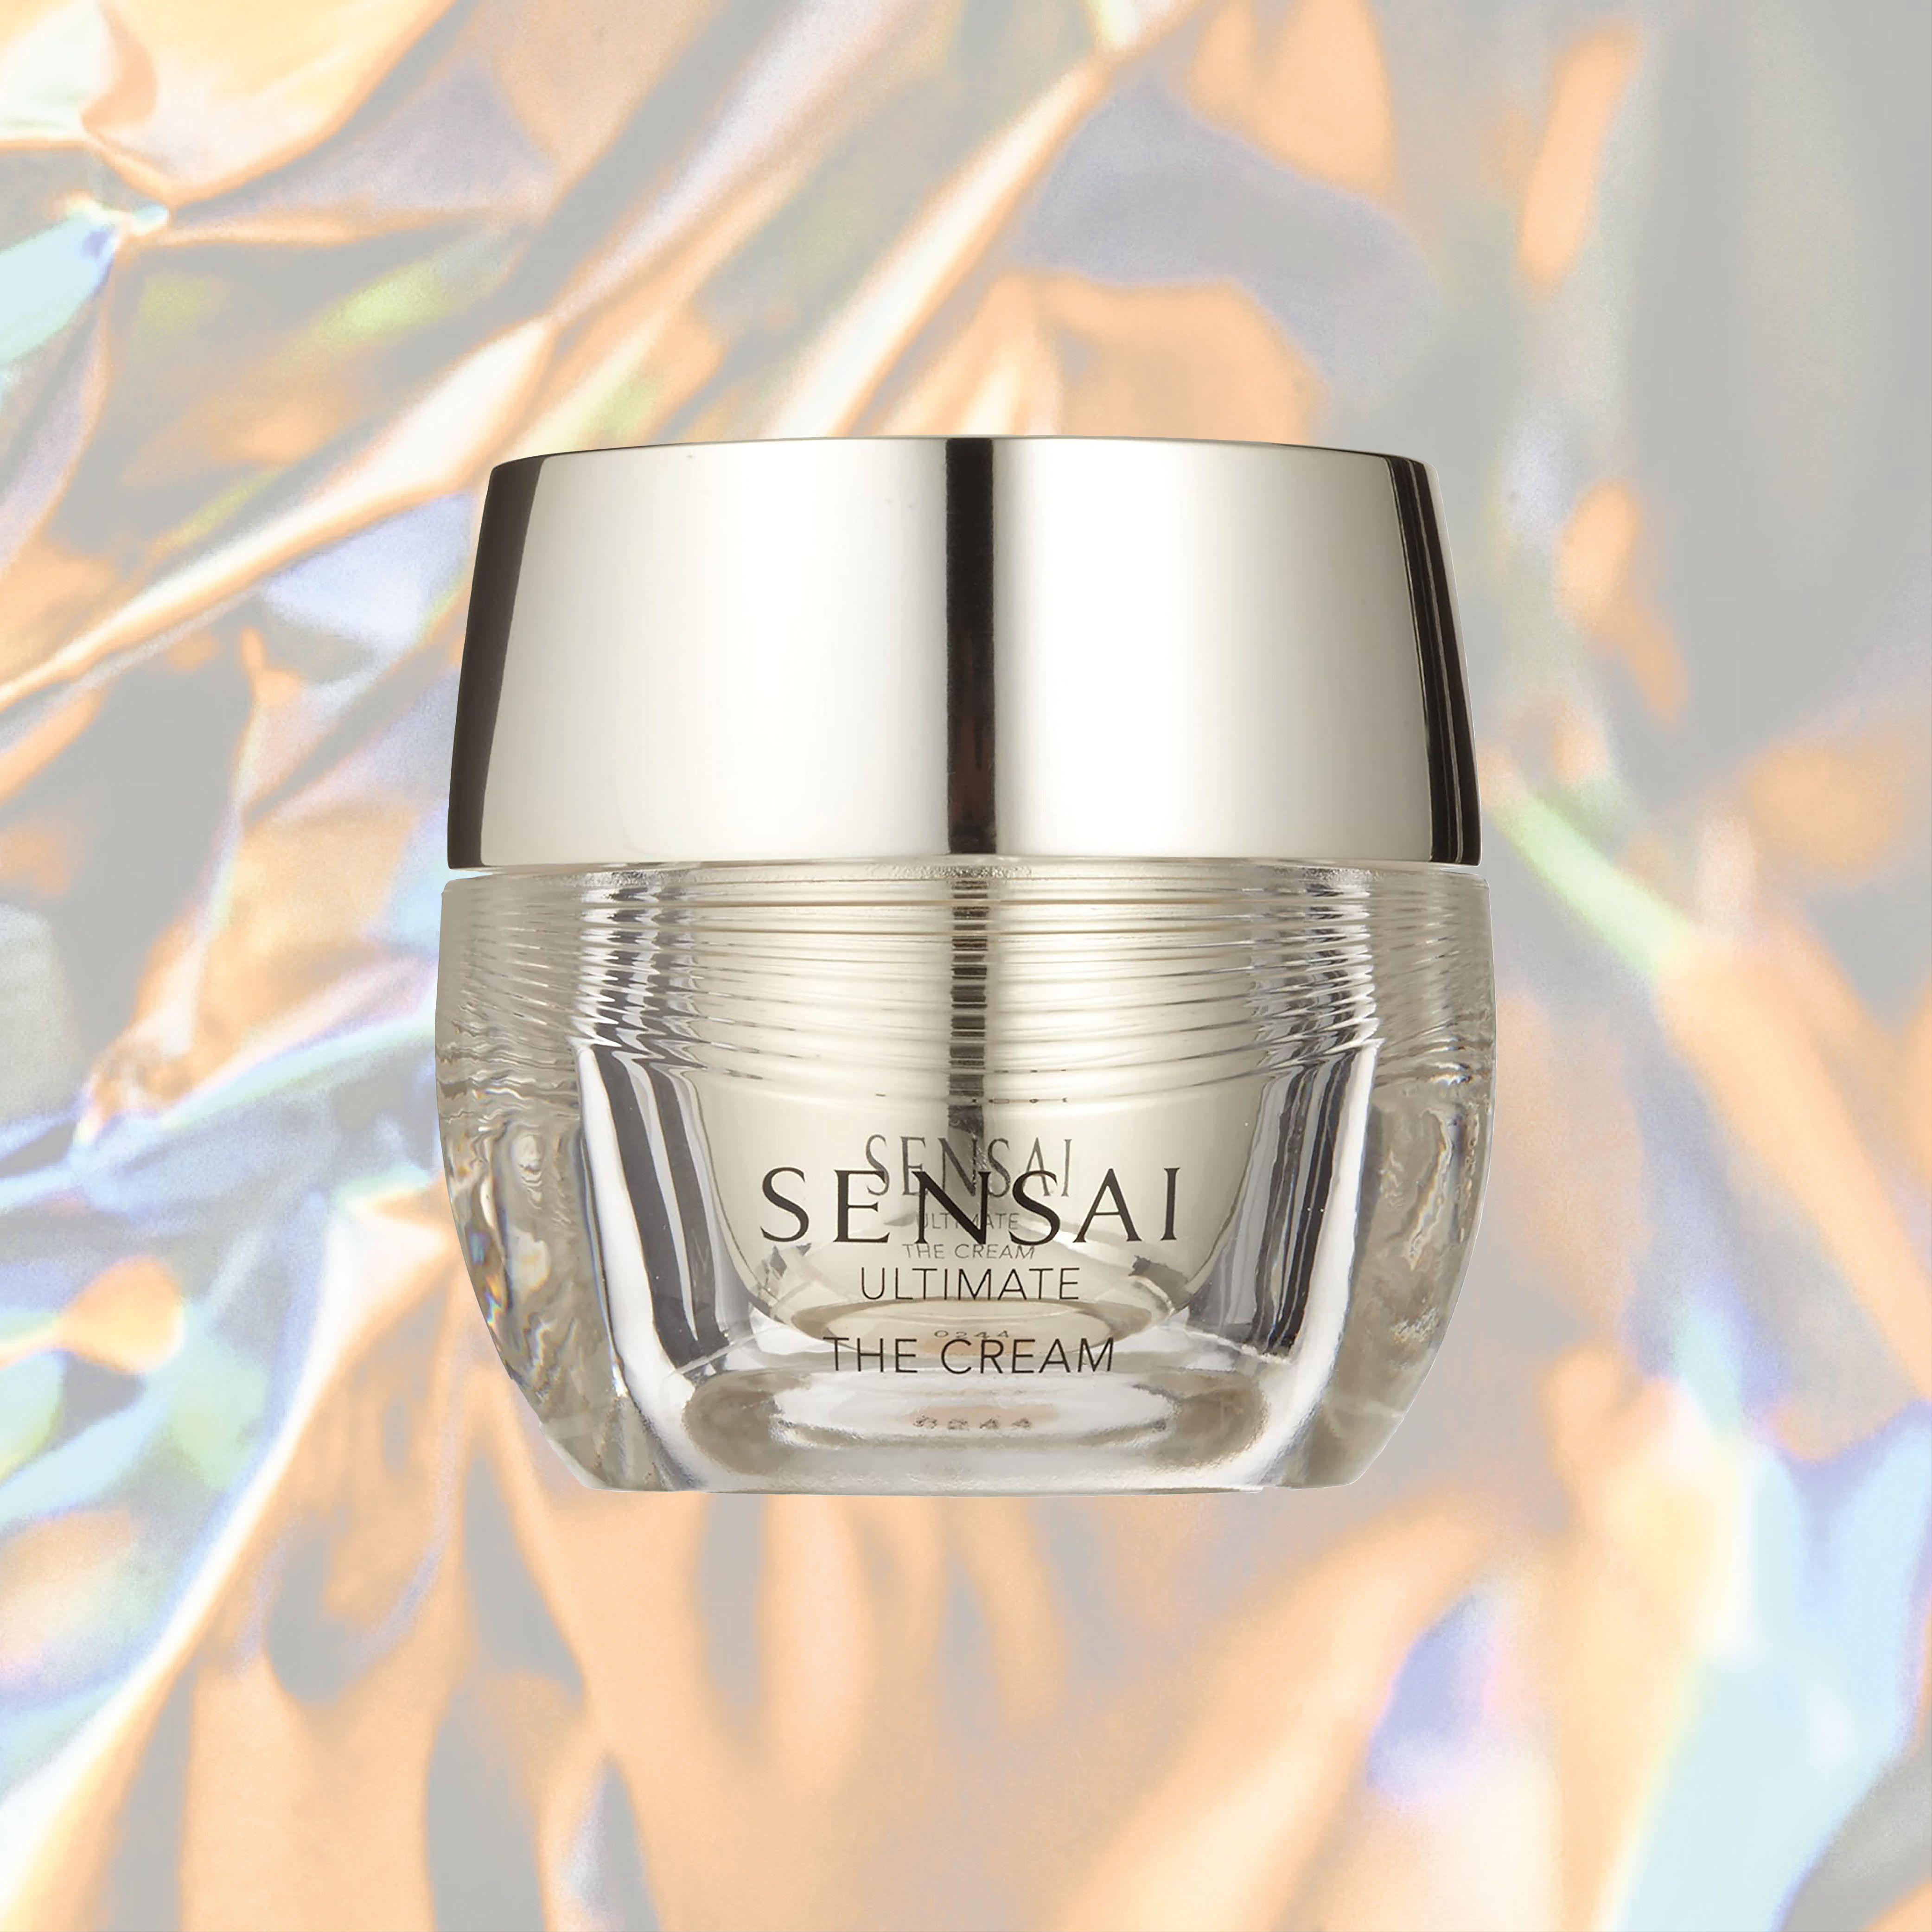 The World S Most Expensive Skincare Products That Are Worth It Buro 24 7 Malaysia In 2020 Skin Care Effective Skin Care Products Hazelnut Oil